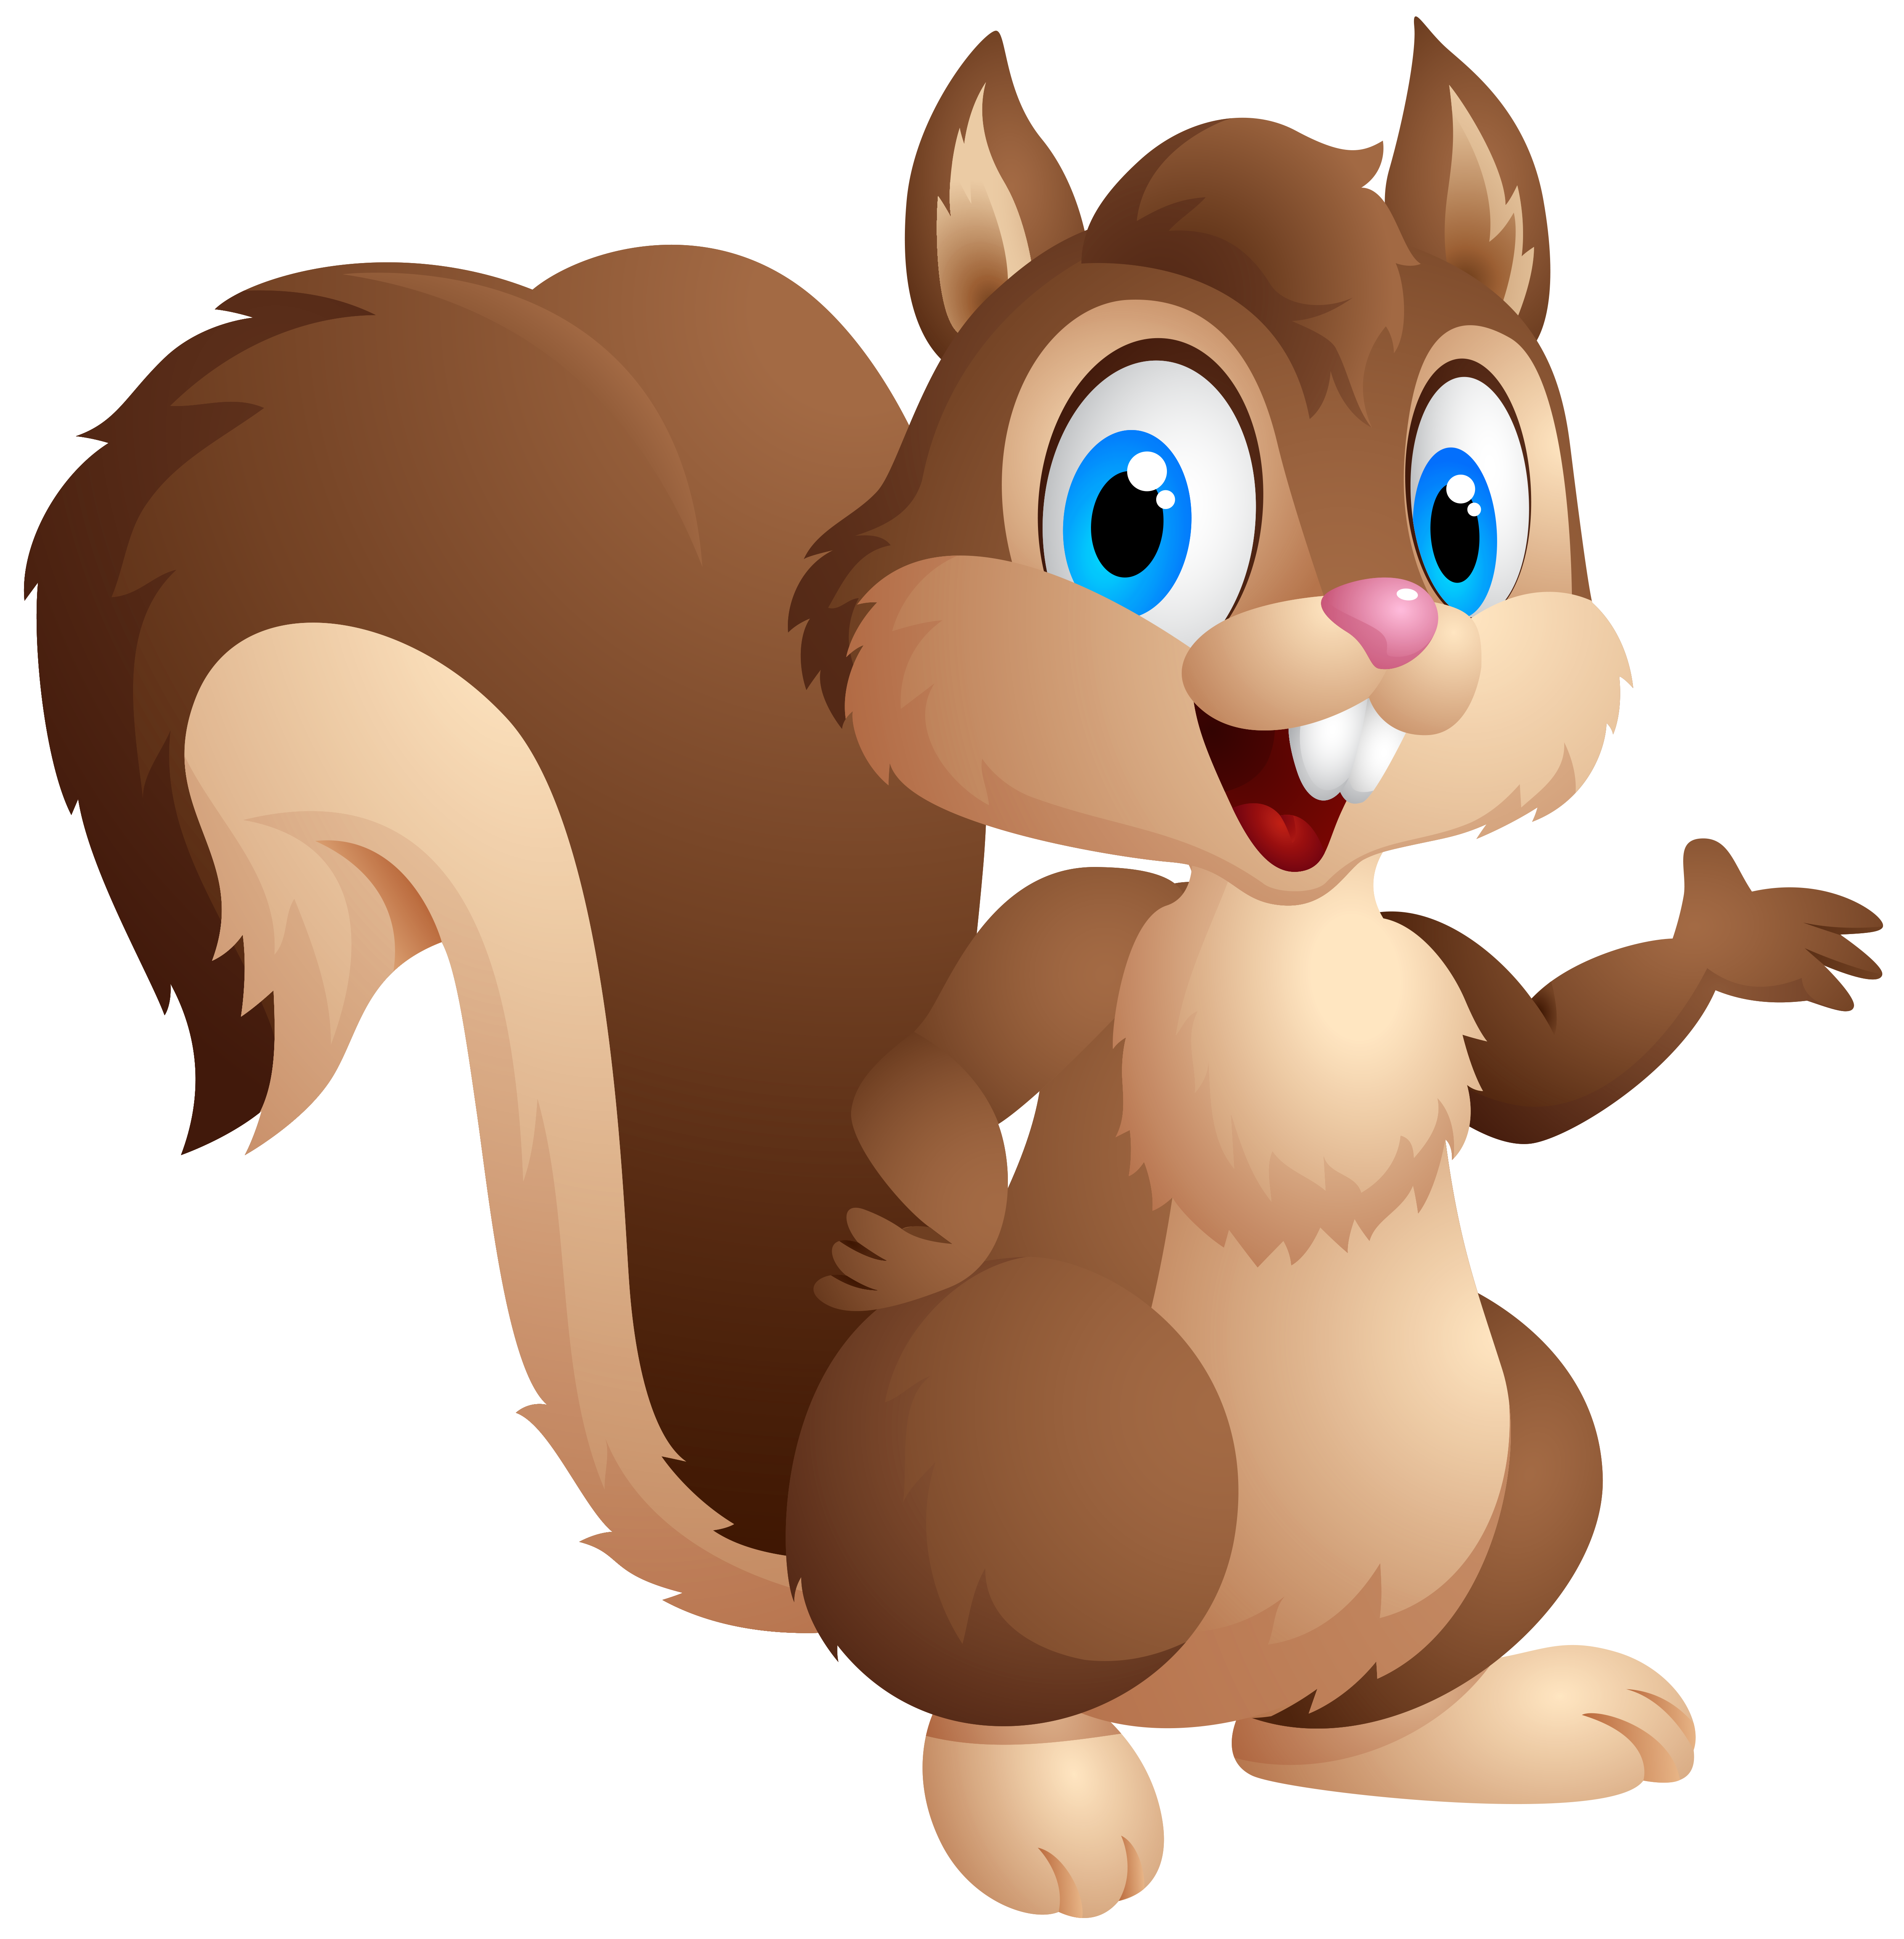 Baby squirrel png. Cute cartoon clipart image